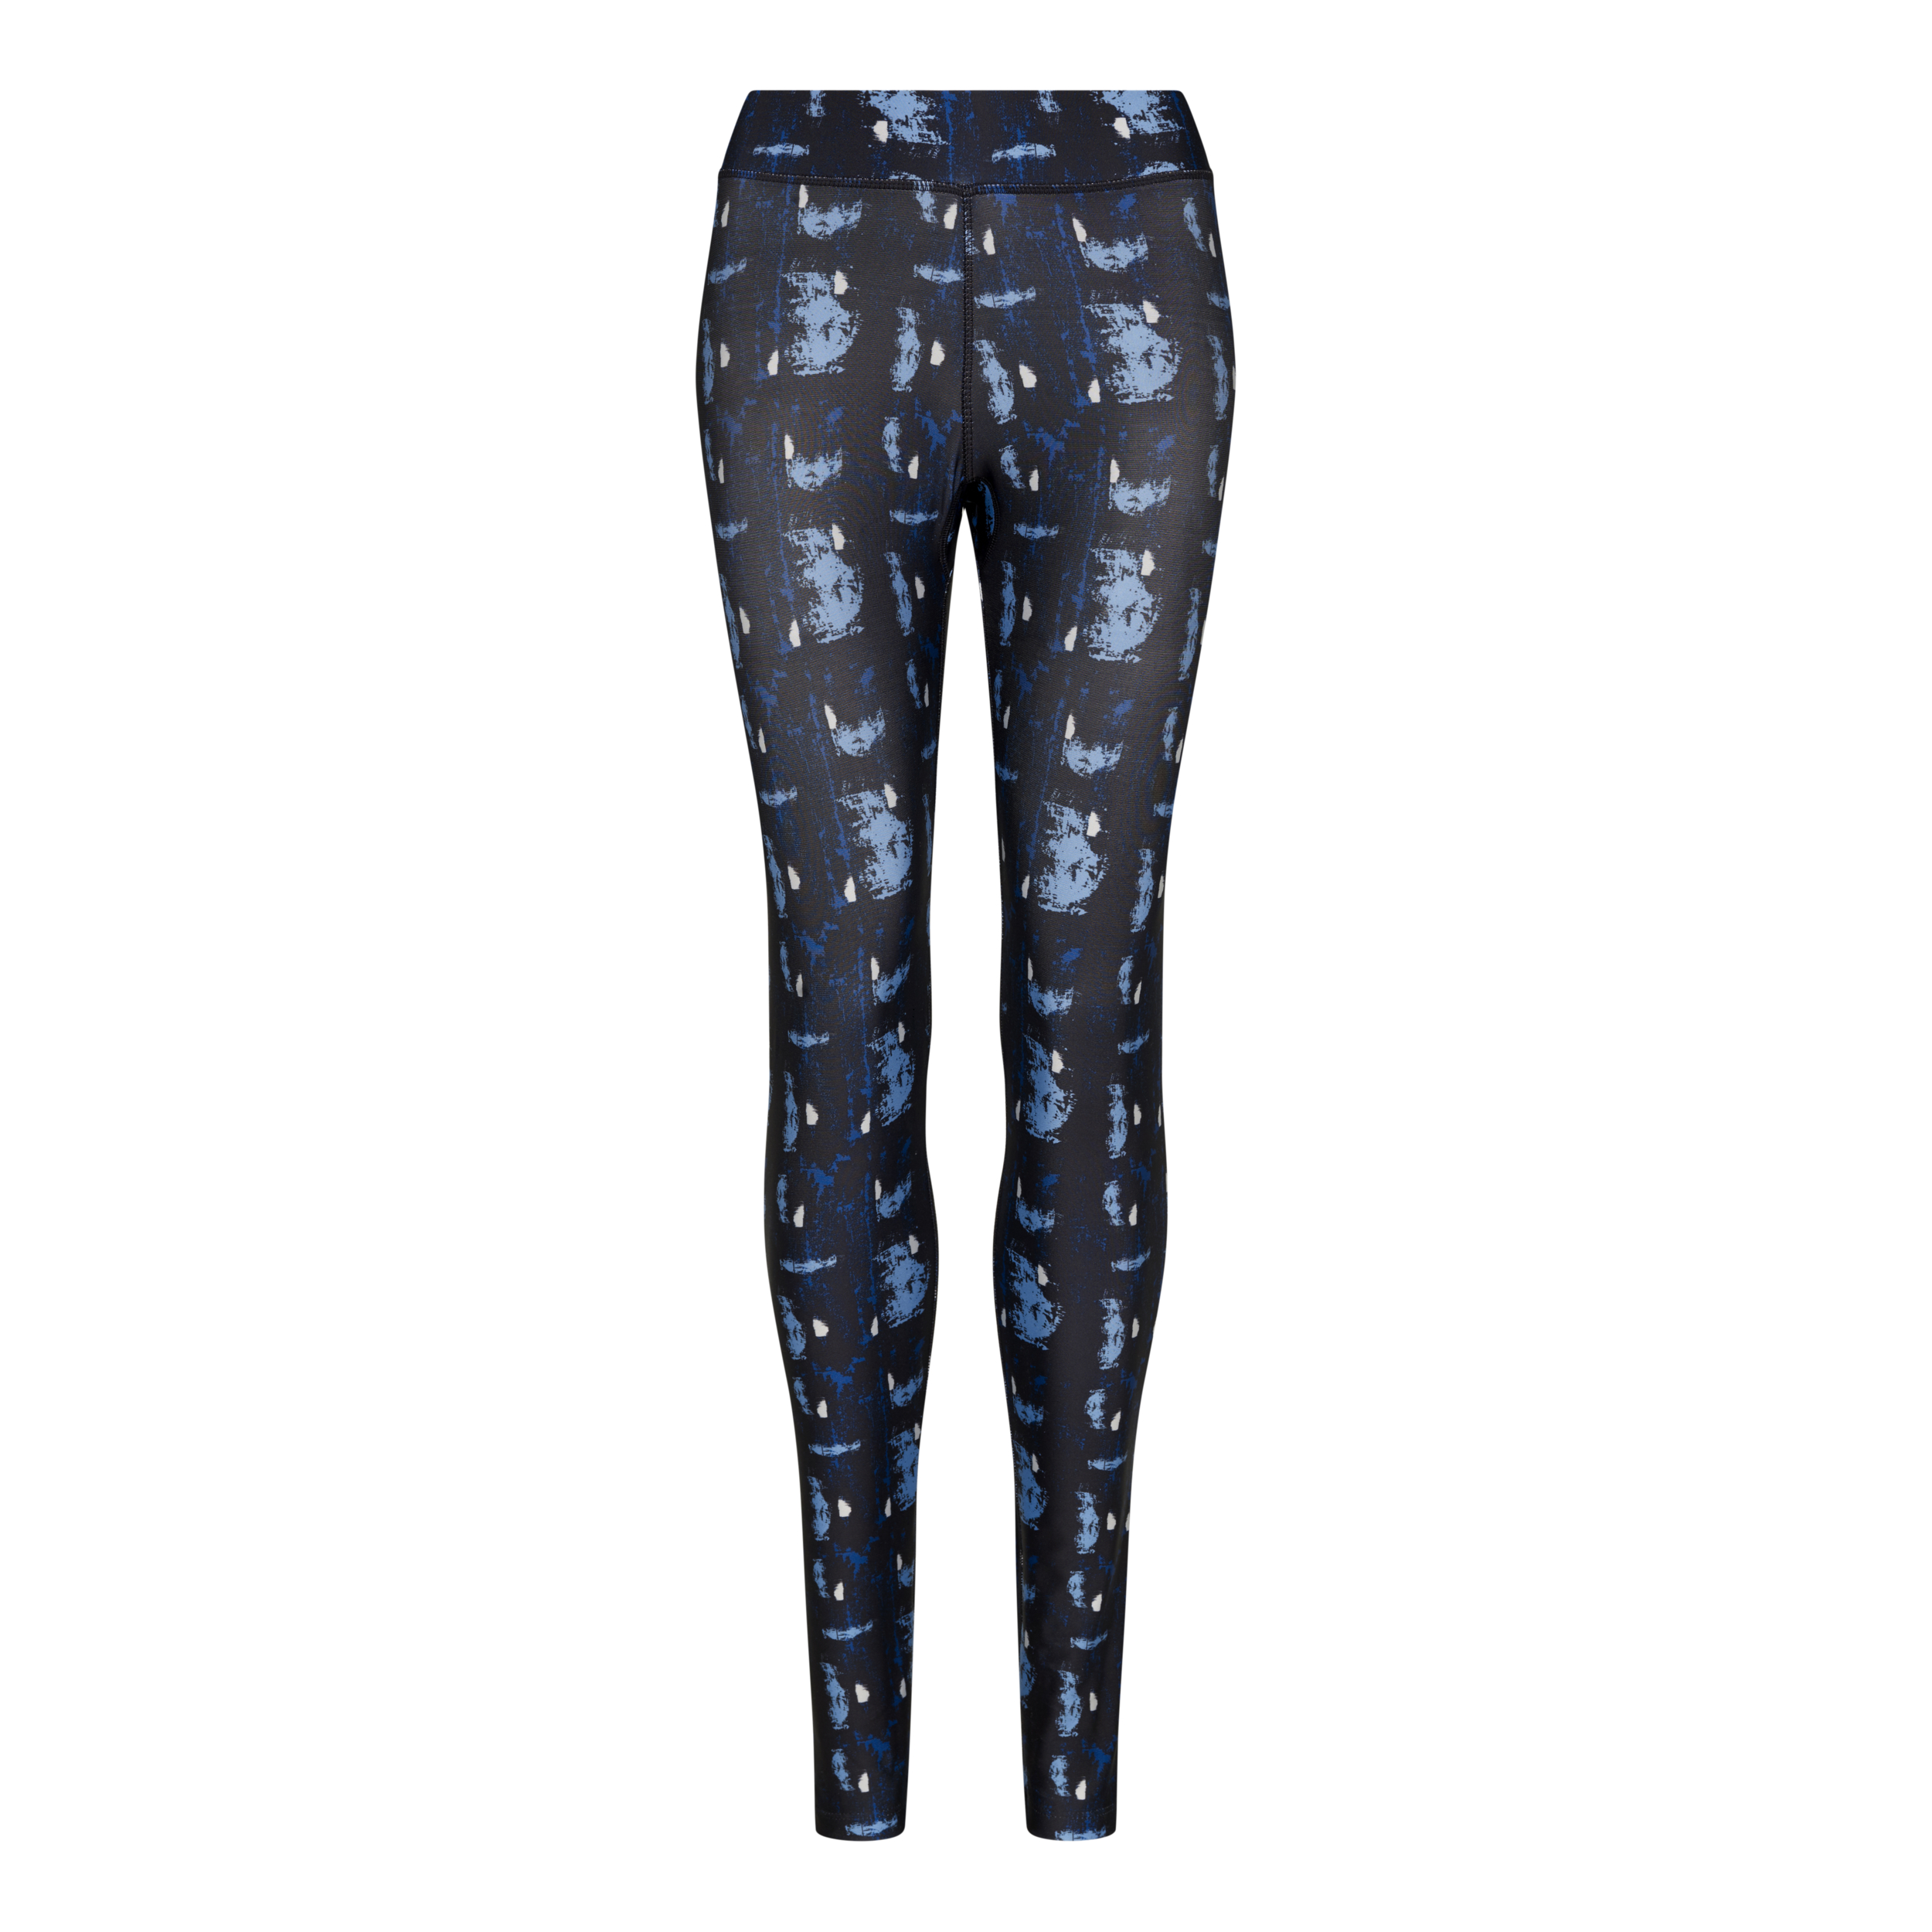 Legging de sport femme Abstract blue